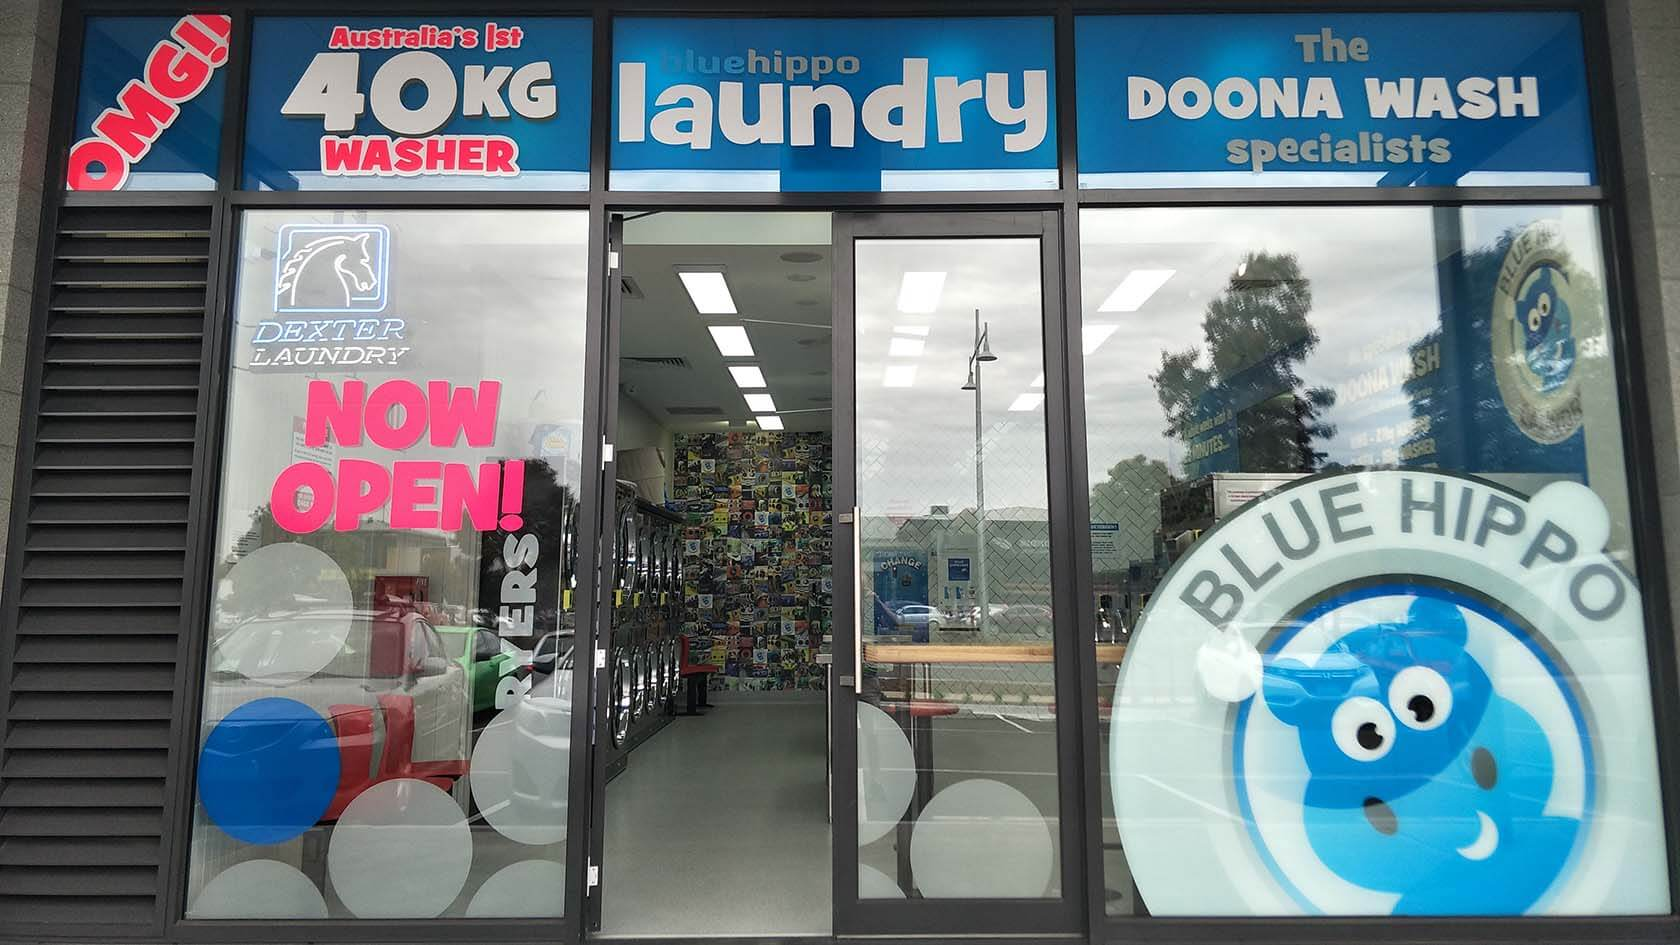 Public Laundry Geelong